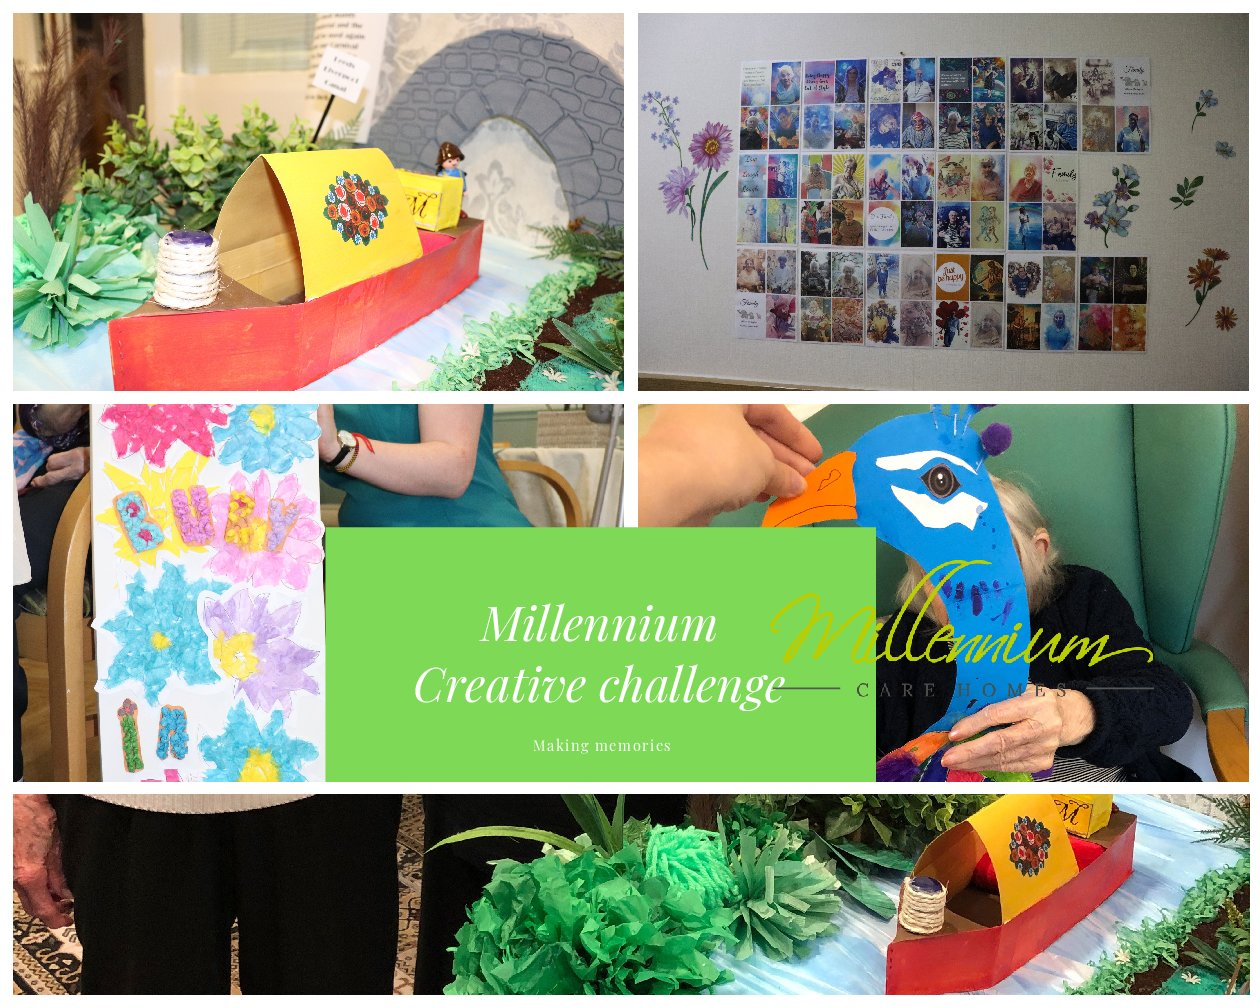 Millennium care homes creative challenge winners 2019